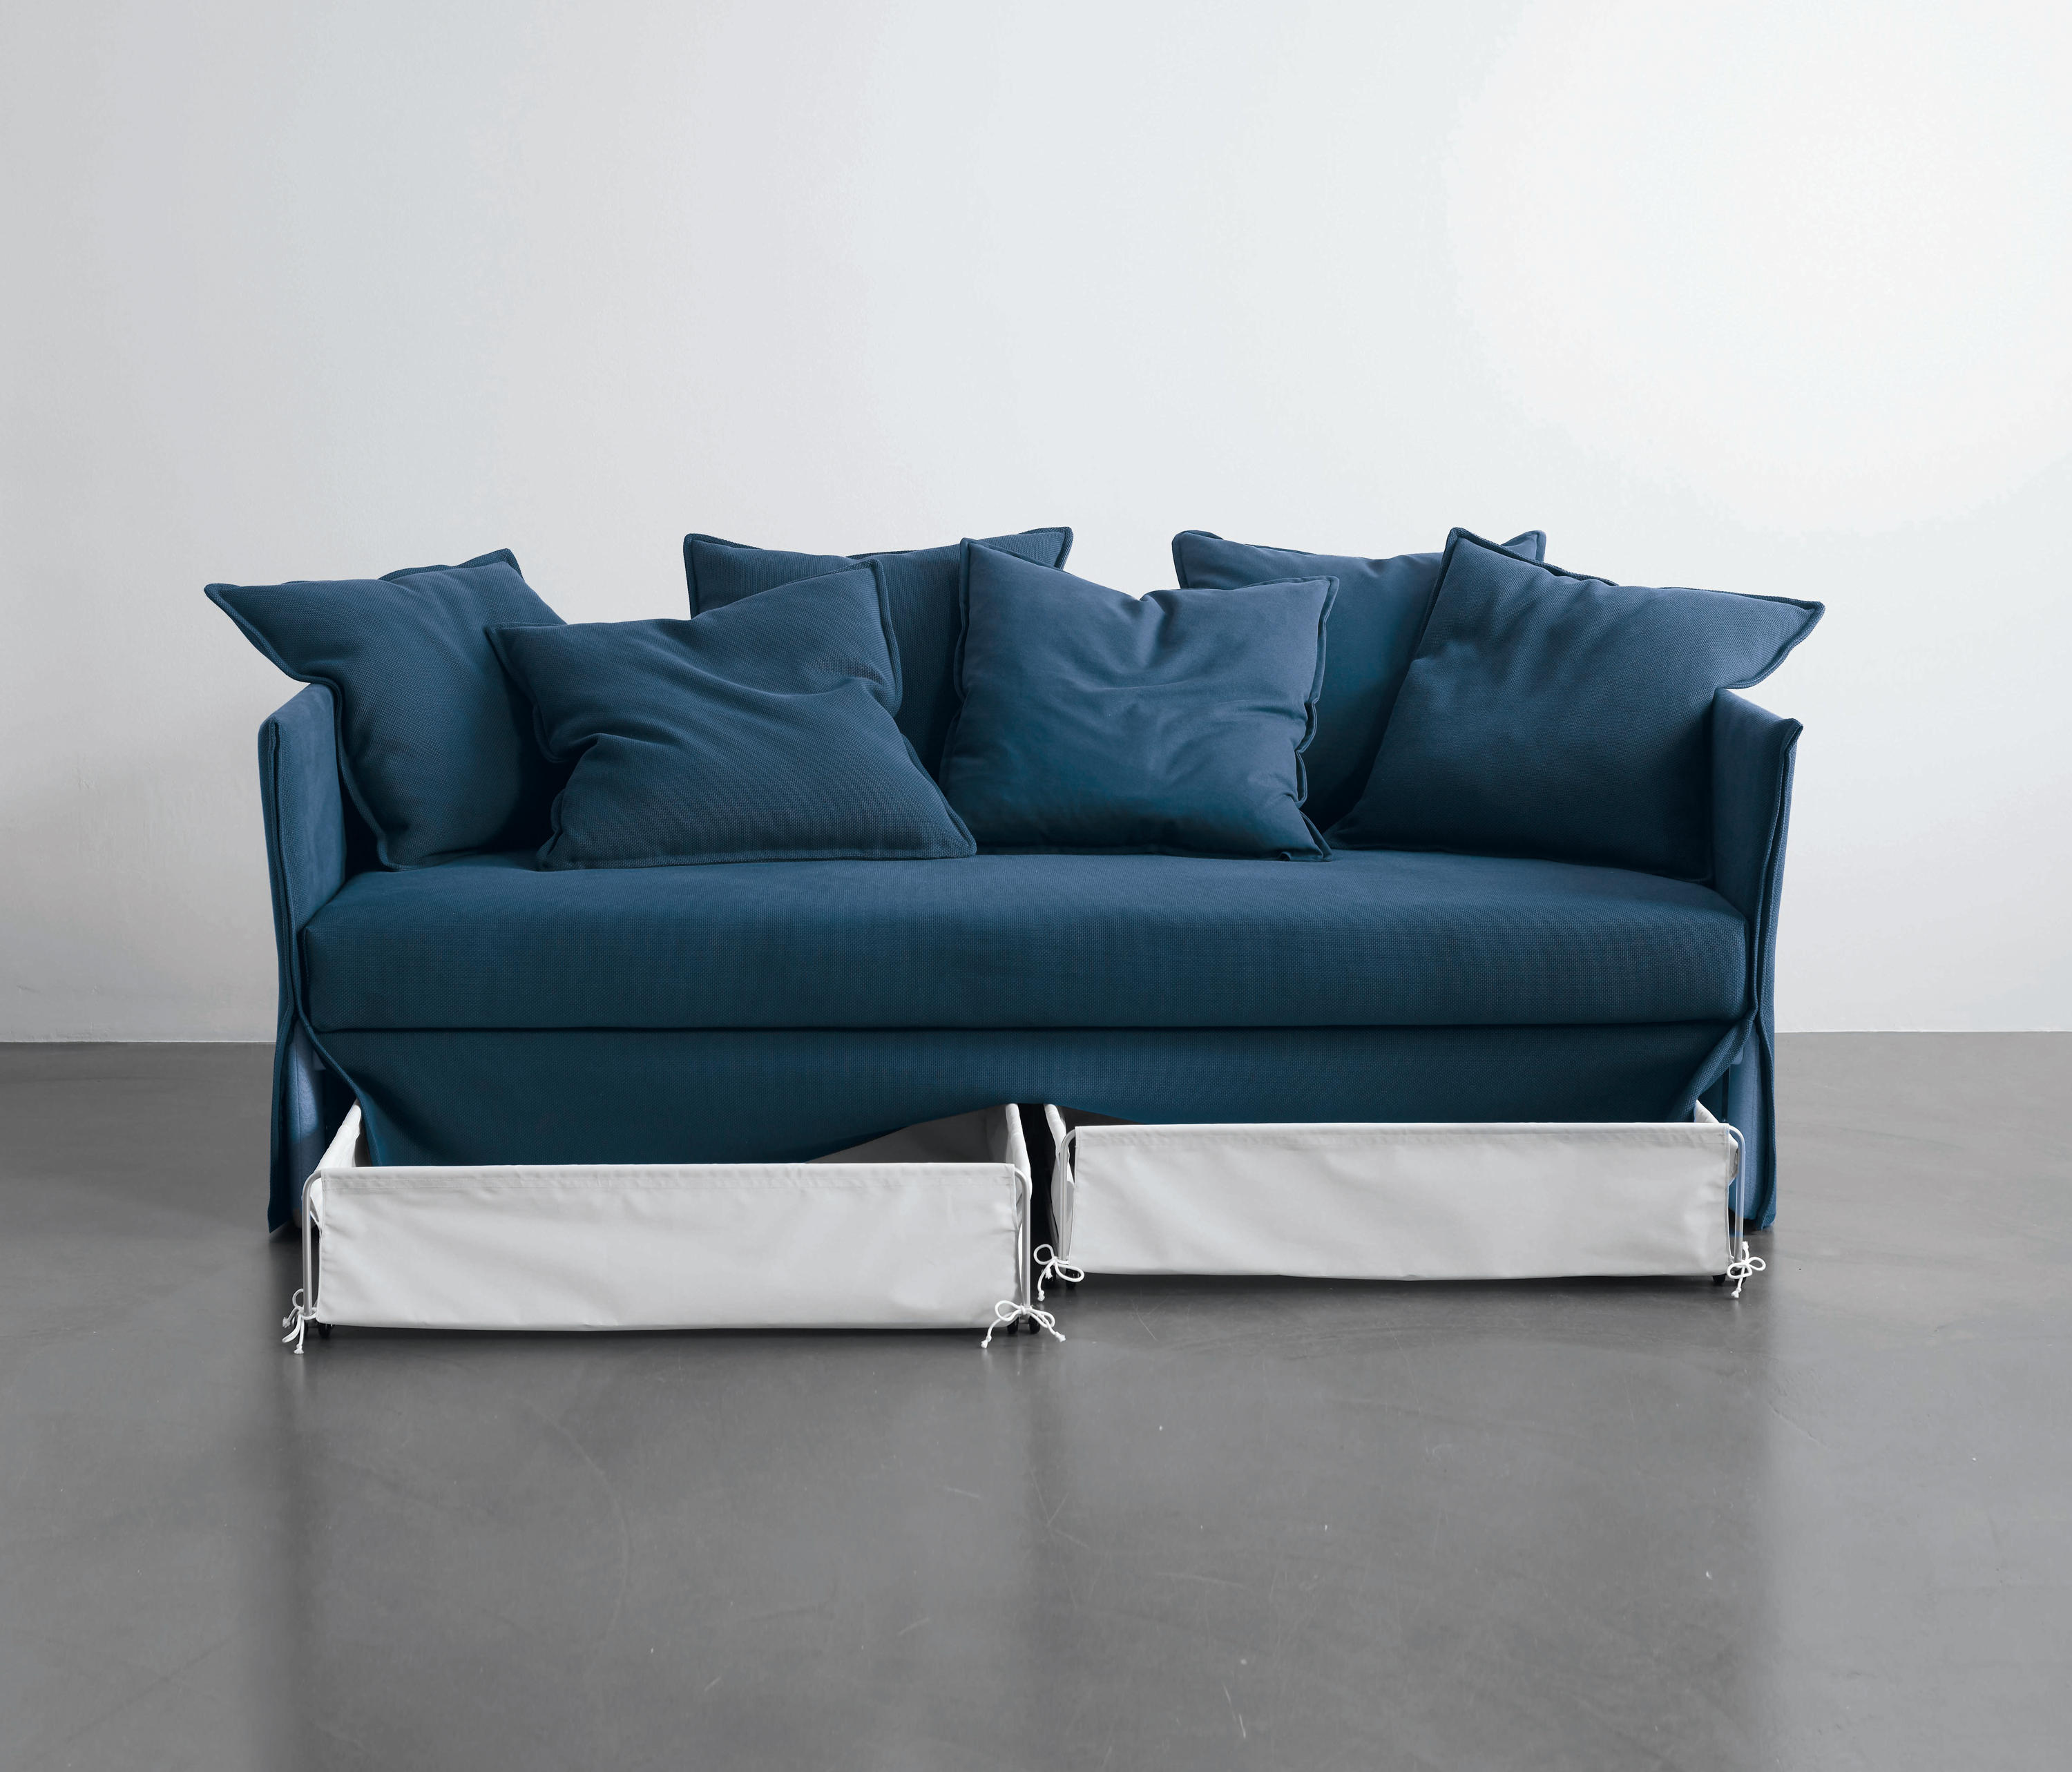 Fox sofa bed sofa beds from meridiani architonic Rotes sofa kiel